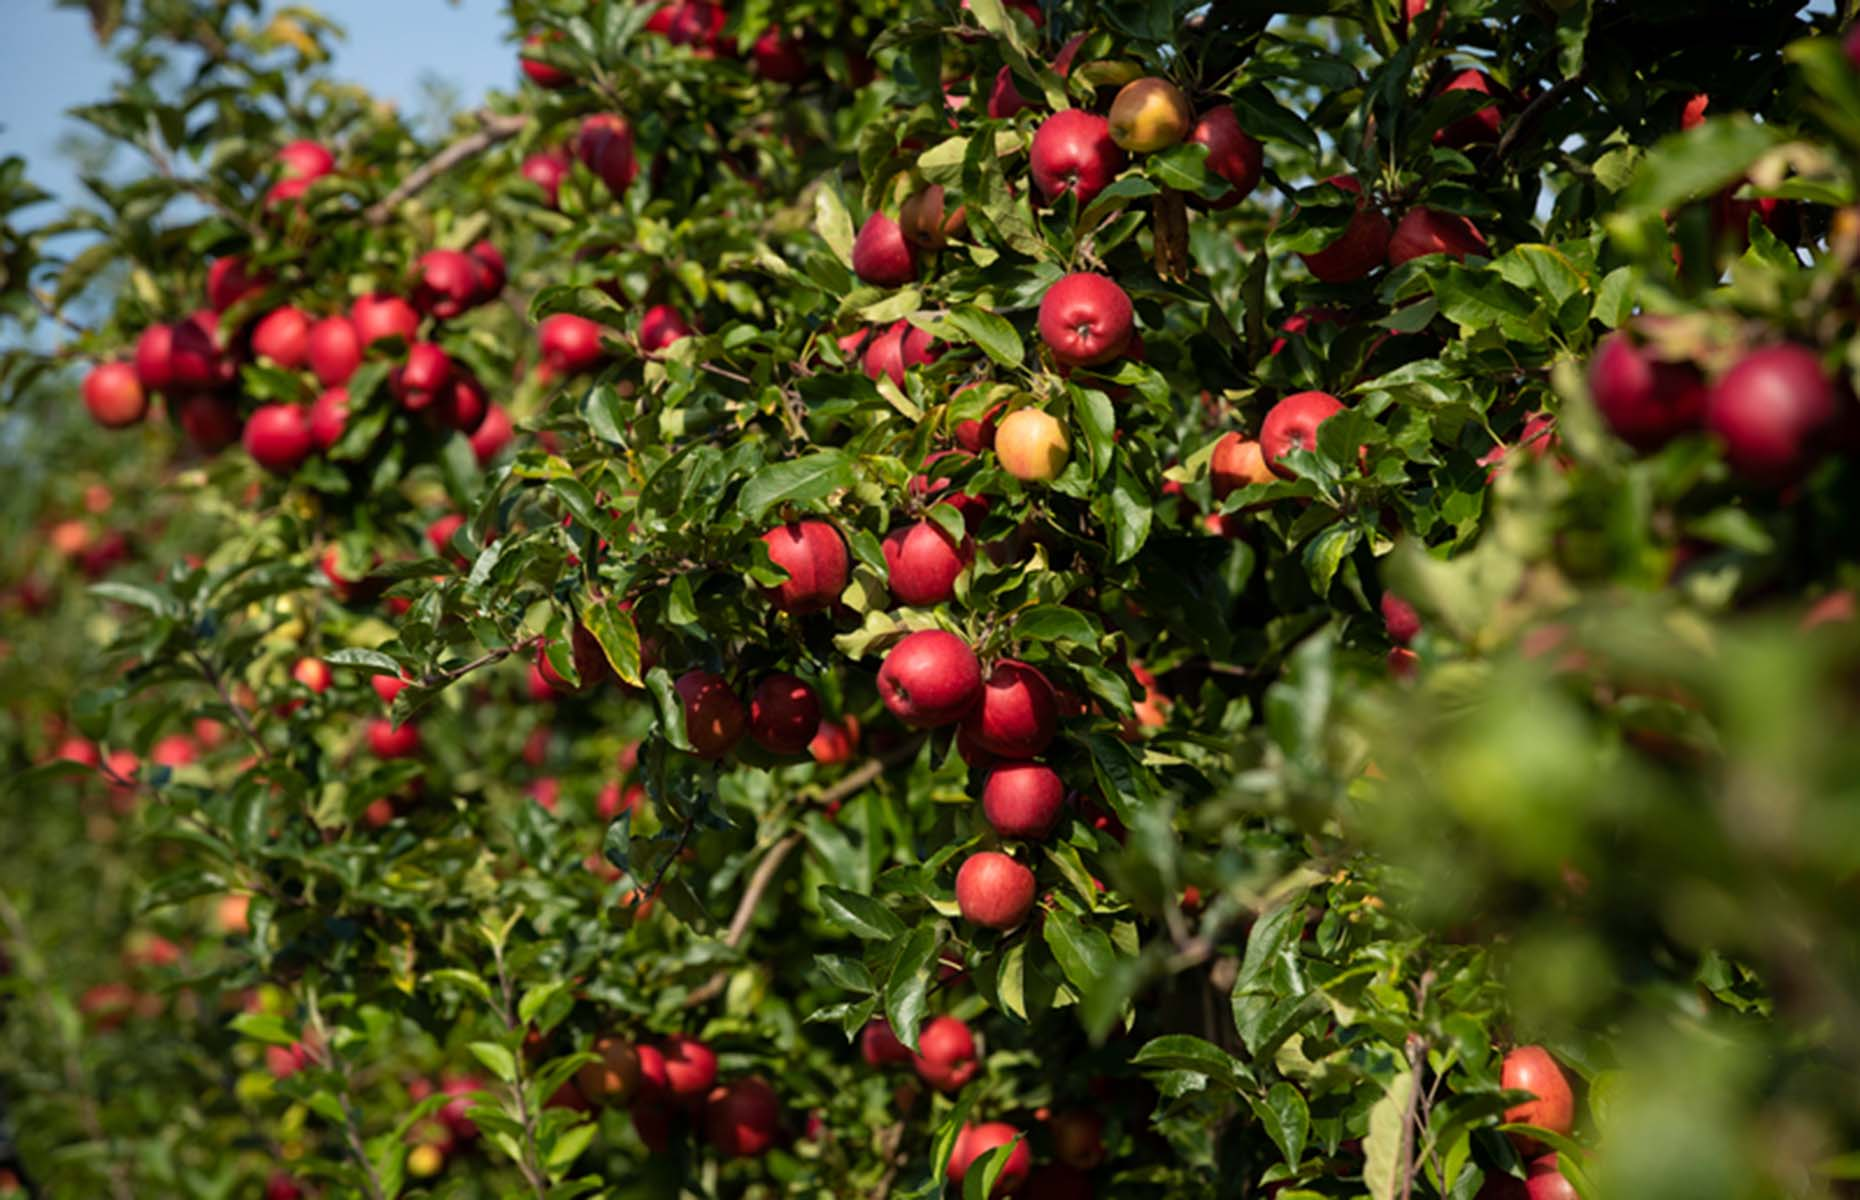 Red-skinned British apples on trees in an orchard (Image: British Apples & Pears Ltd.)